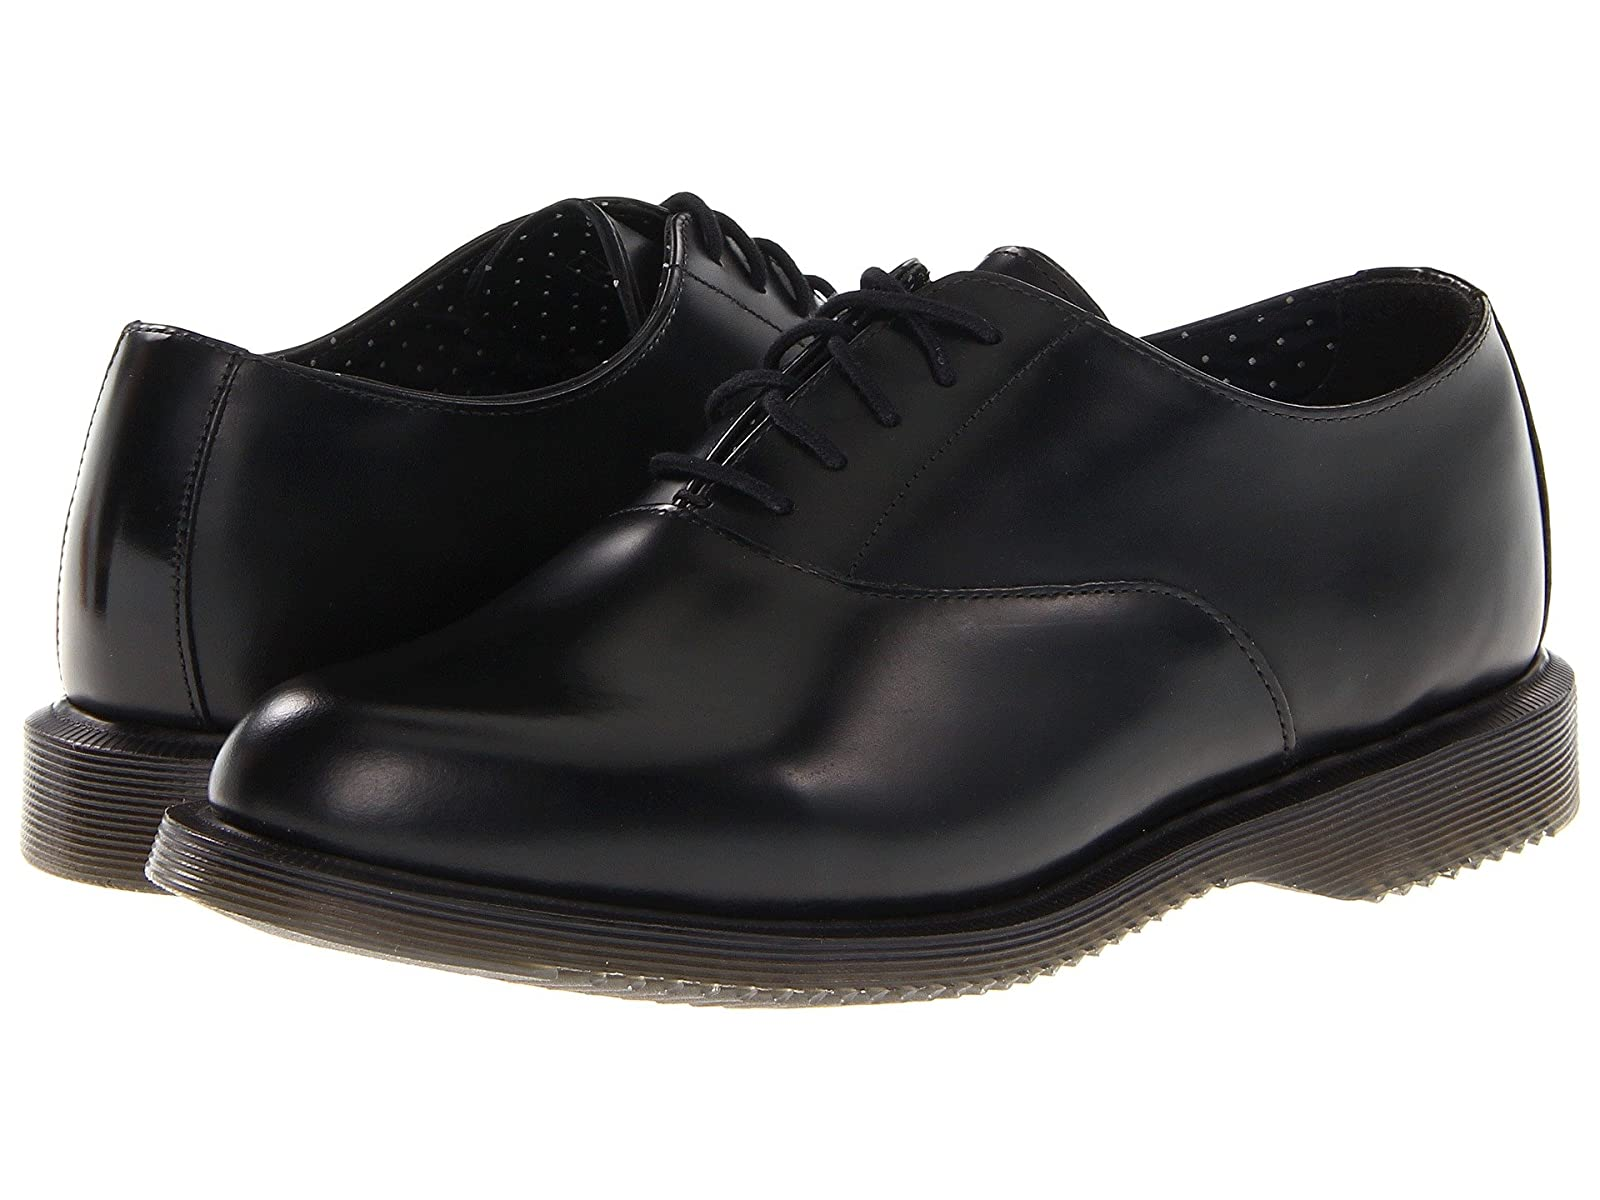 Dr. Martens Bennett 5-Eye OxfordCheap and distinctive eye-catching shoes